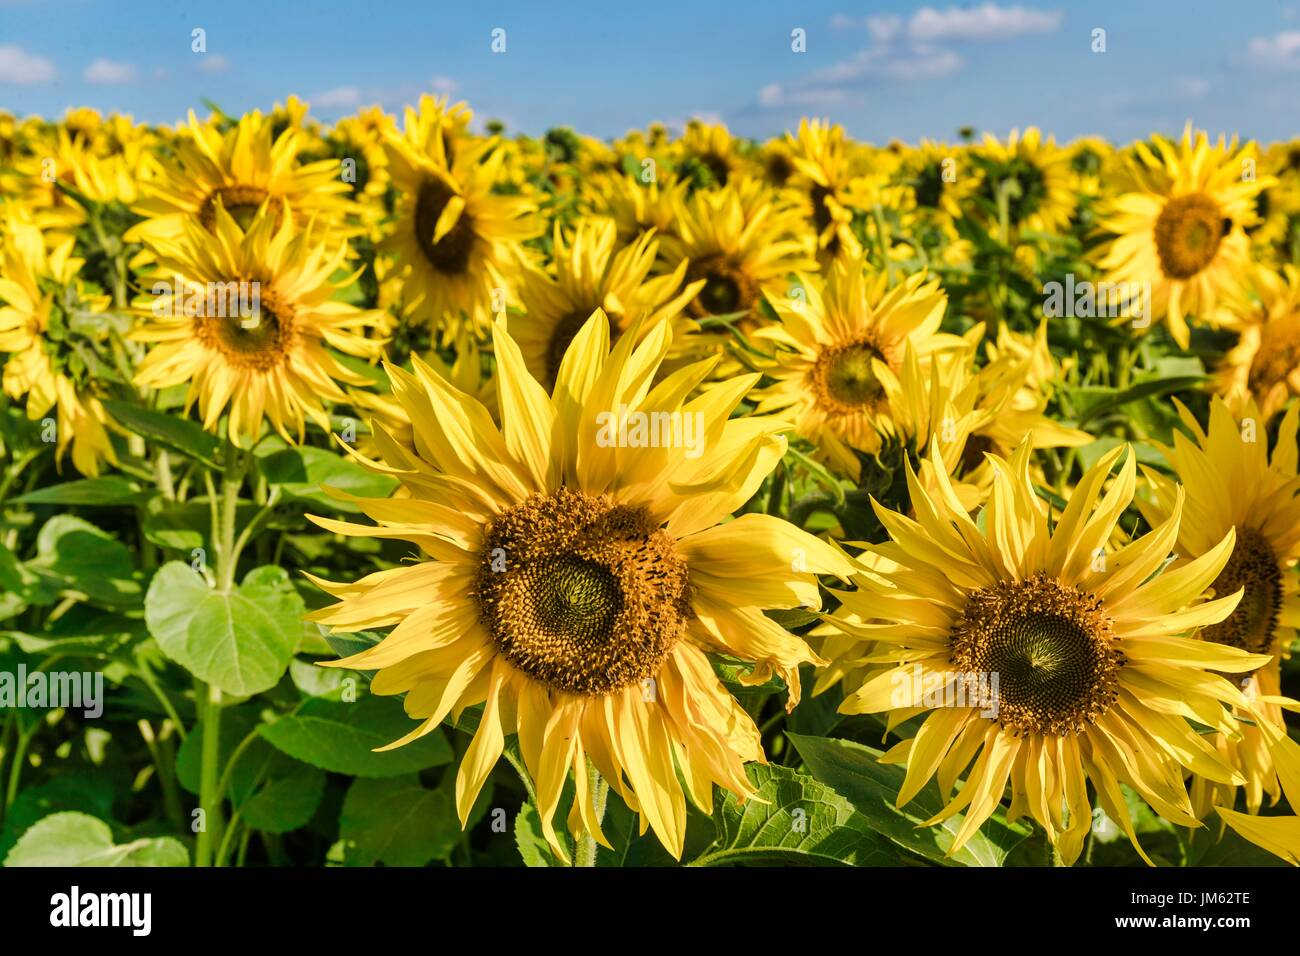 Fields of sunflowers in a farm close to Hitchin - Stock Image